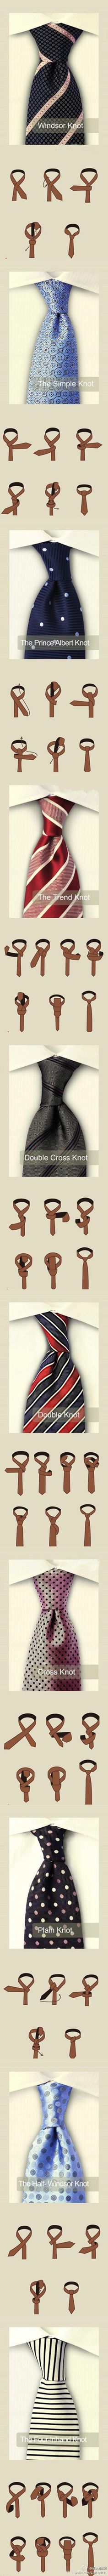 Tie knots. I'm going to need this soon.